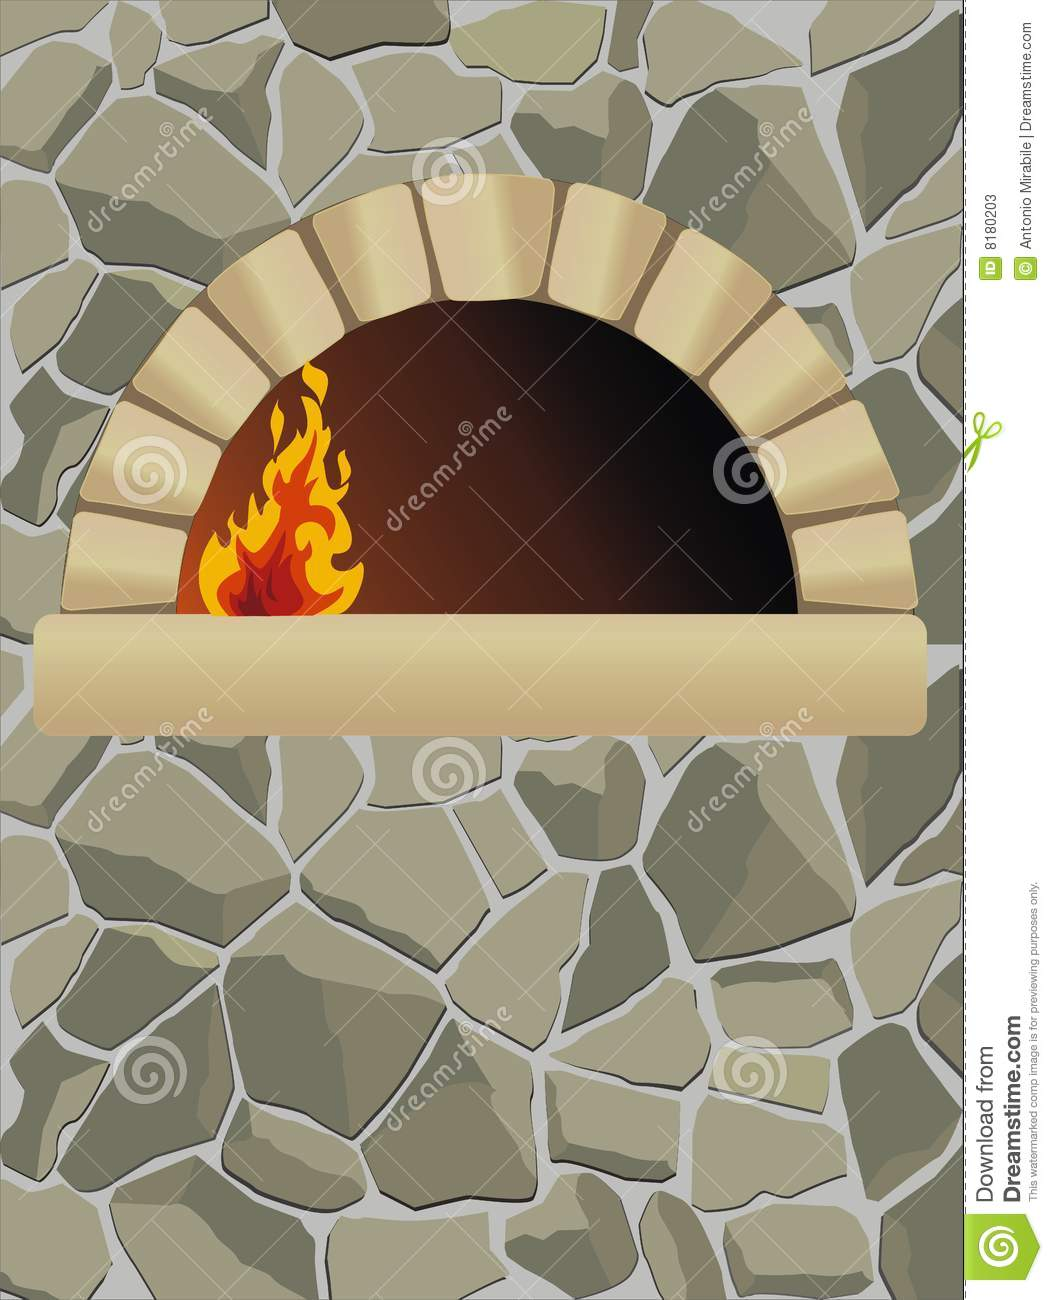 Business plan da forno